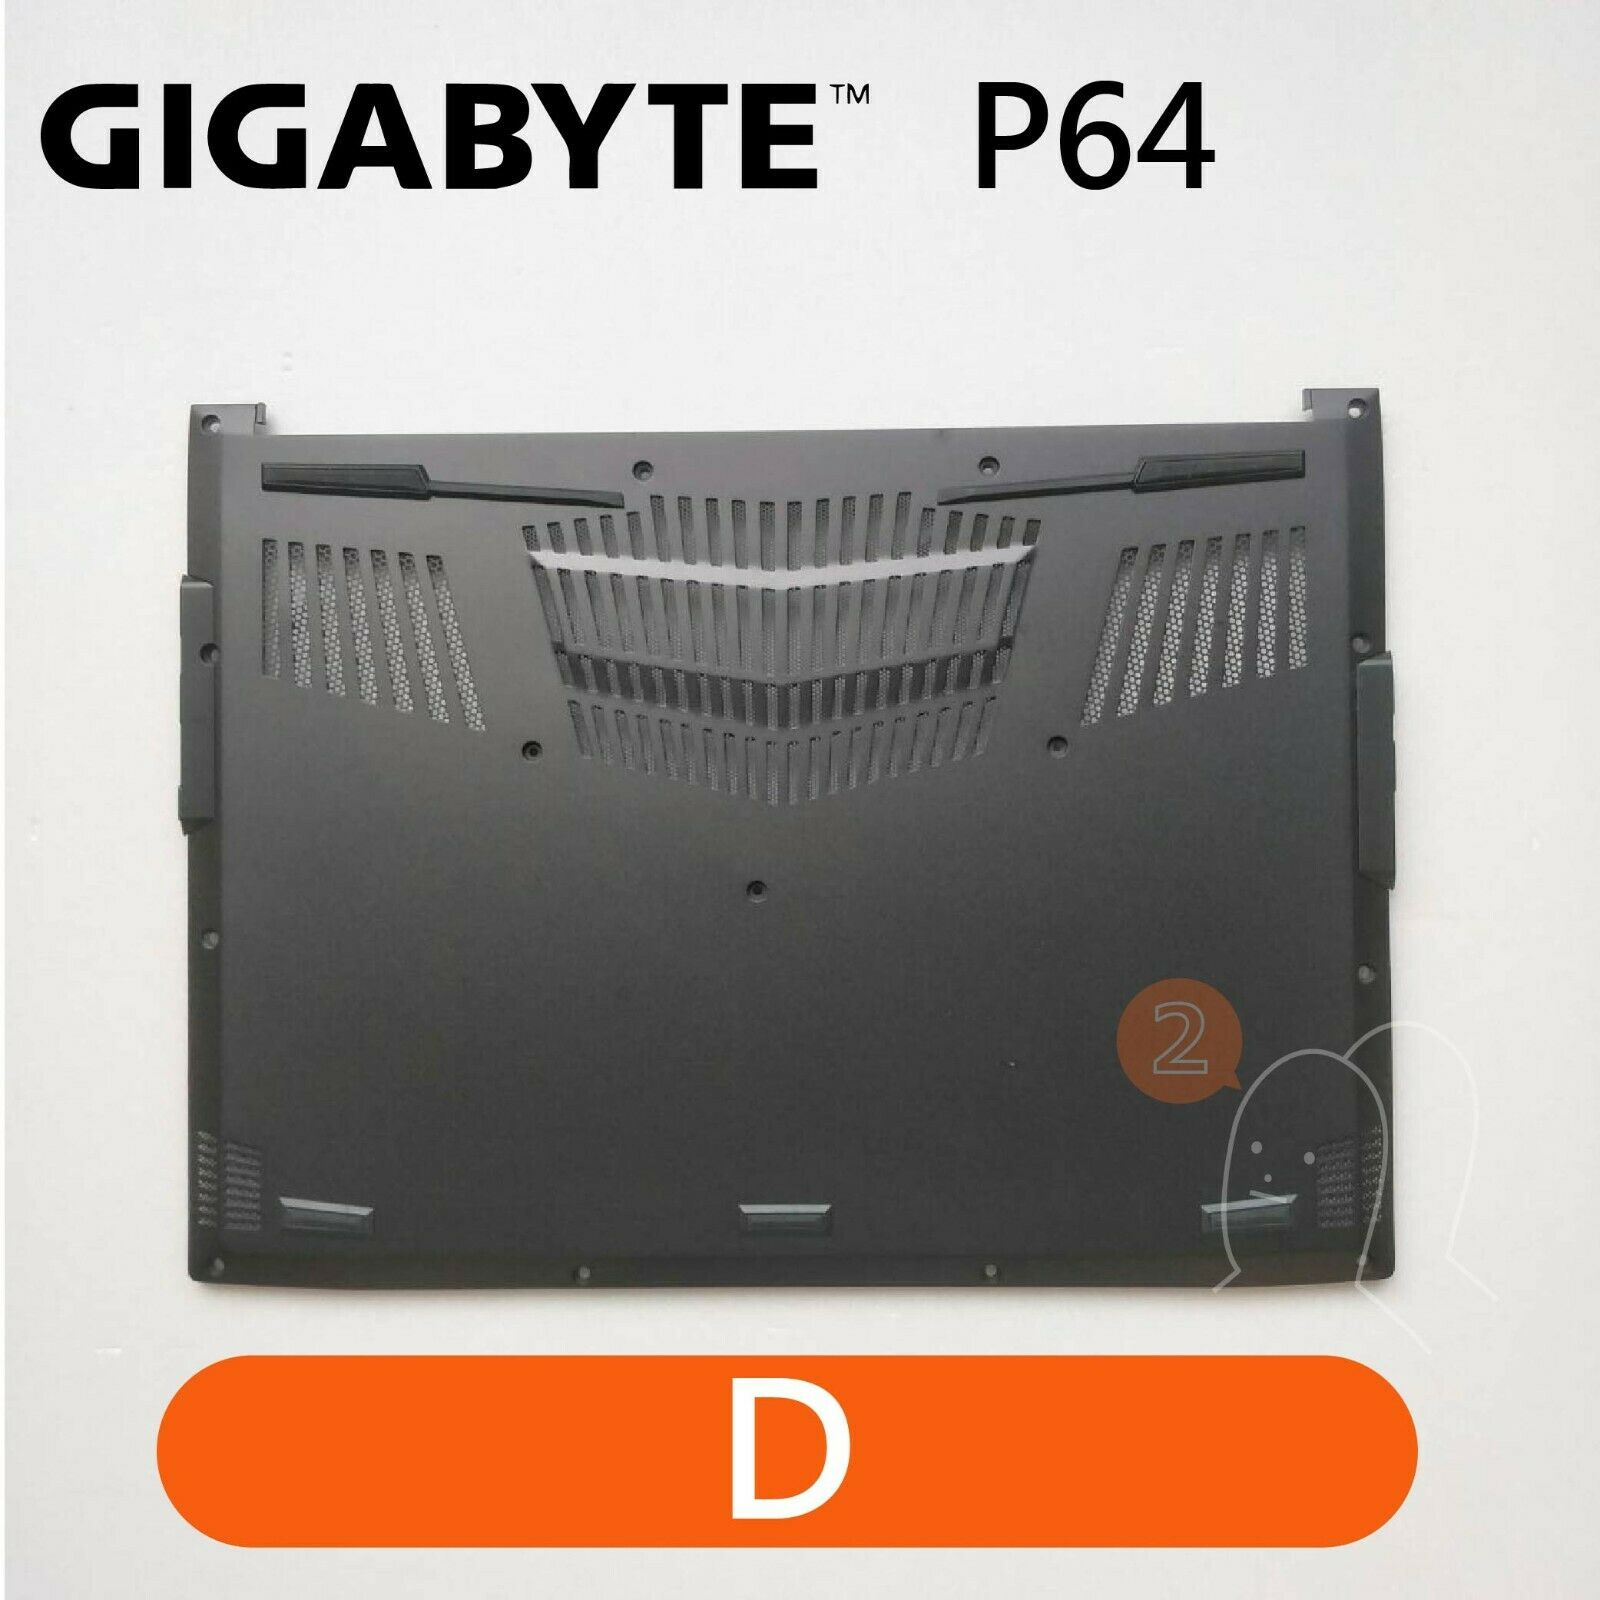 【2p3c】Replacement for GIGABYTE P64 Laptop LCD Cover : D(Bottom Base)